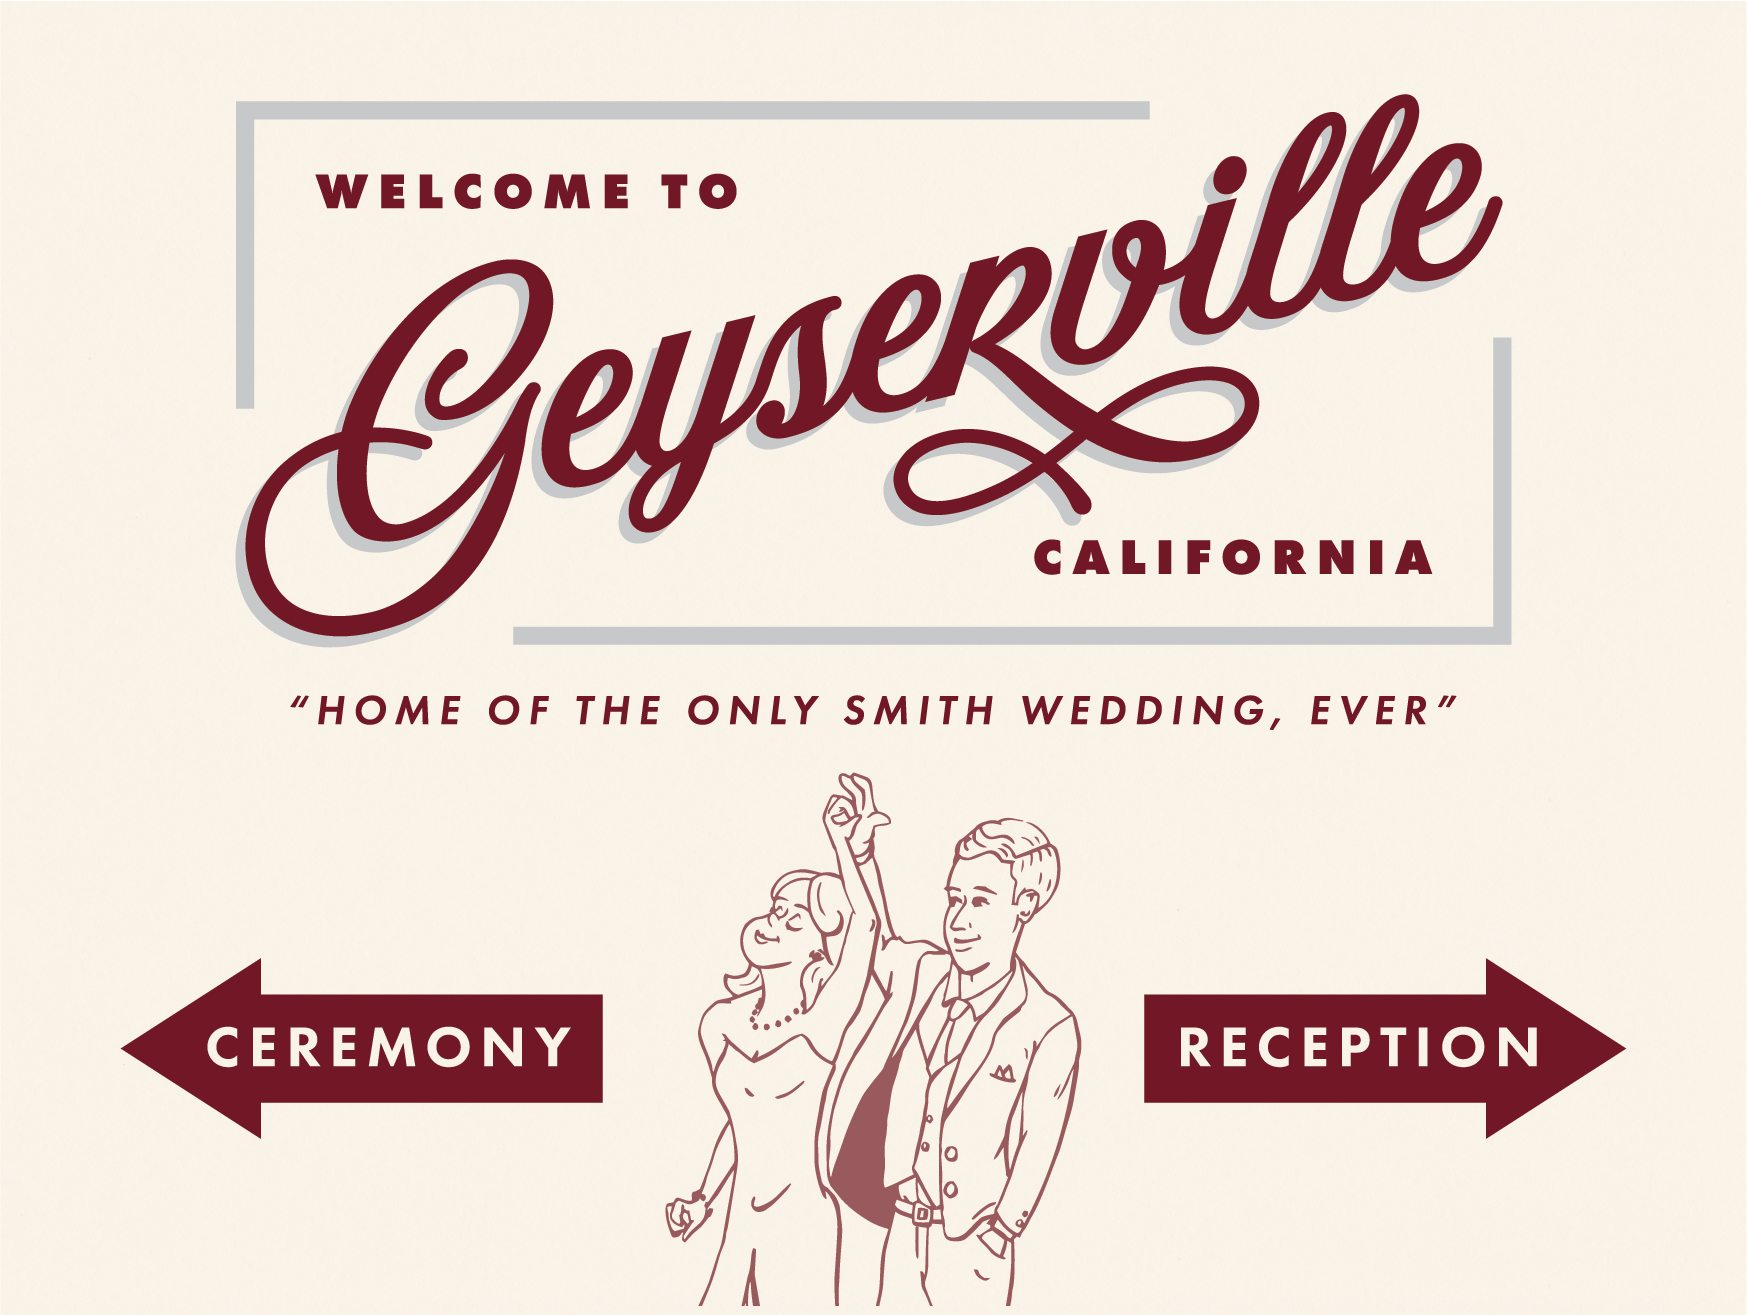 This was the sign in front of our wedding venue. My wife created the illustration of the two of us dancing, and we wanted to make the rest of the sign feel like it was something you'd see as you entered a little town.